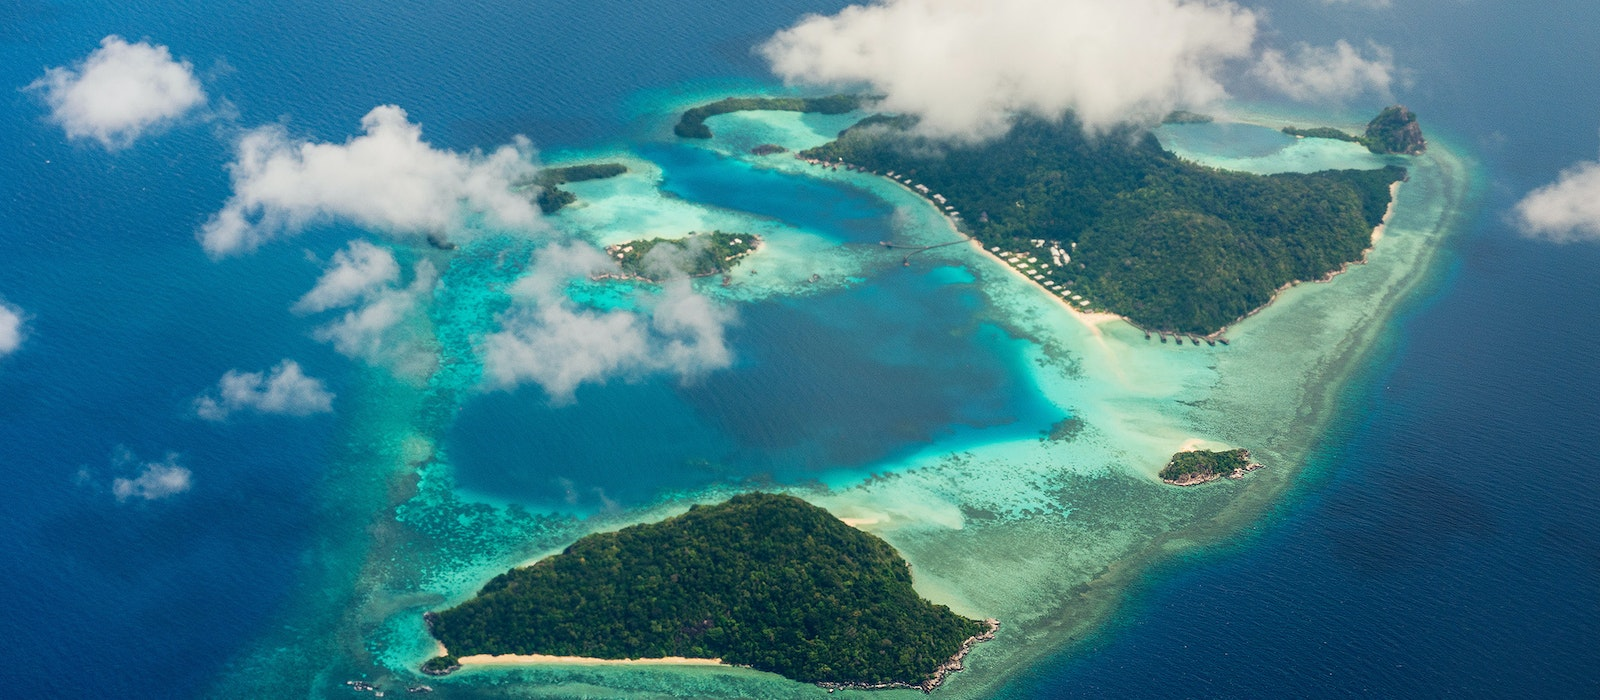 The Bawah Reserve consists of six private islands in the Anambas Archipelago in Indonesia.